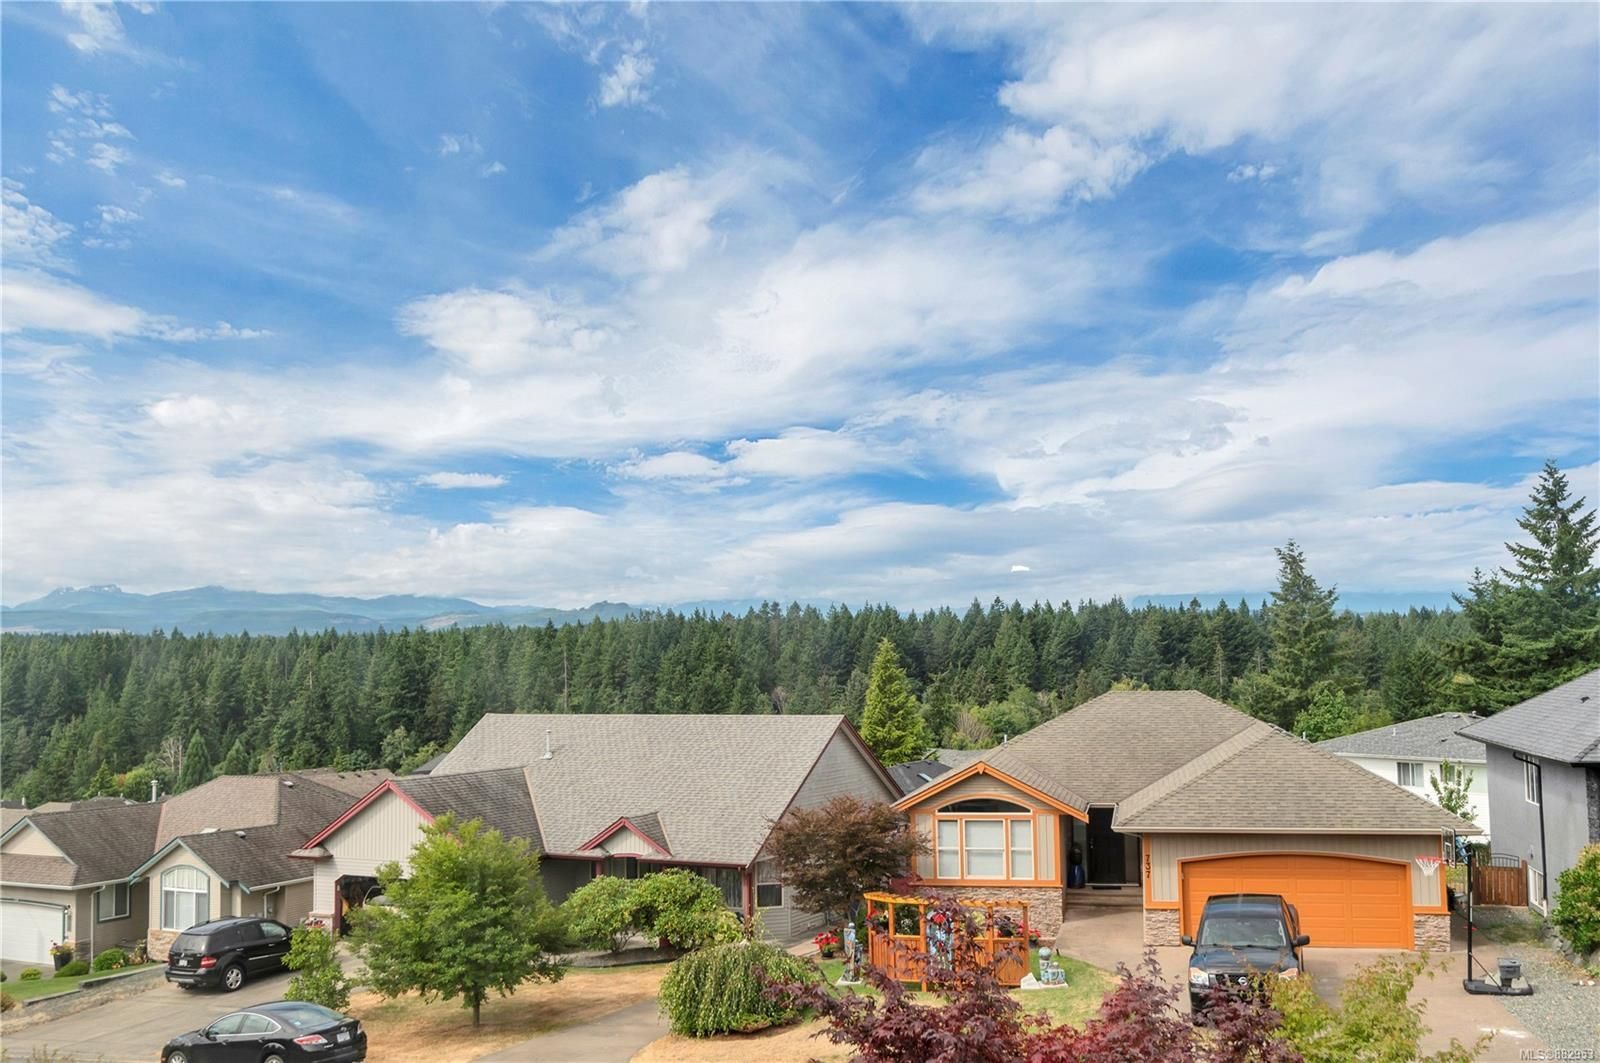 Photo 35: Photos: 732 Oribi Dr in : CR Campbell River Central House for sale (Campbell River)  : MLS®# 882953